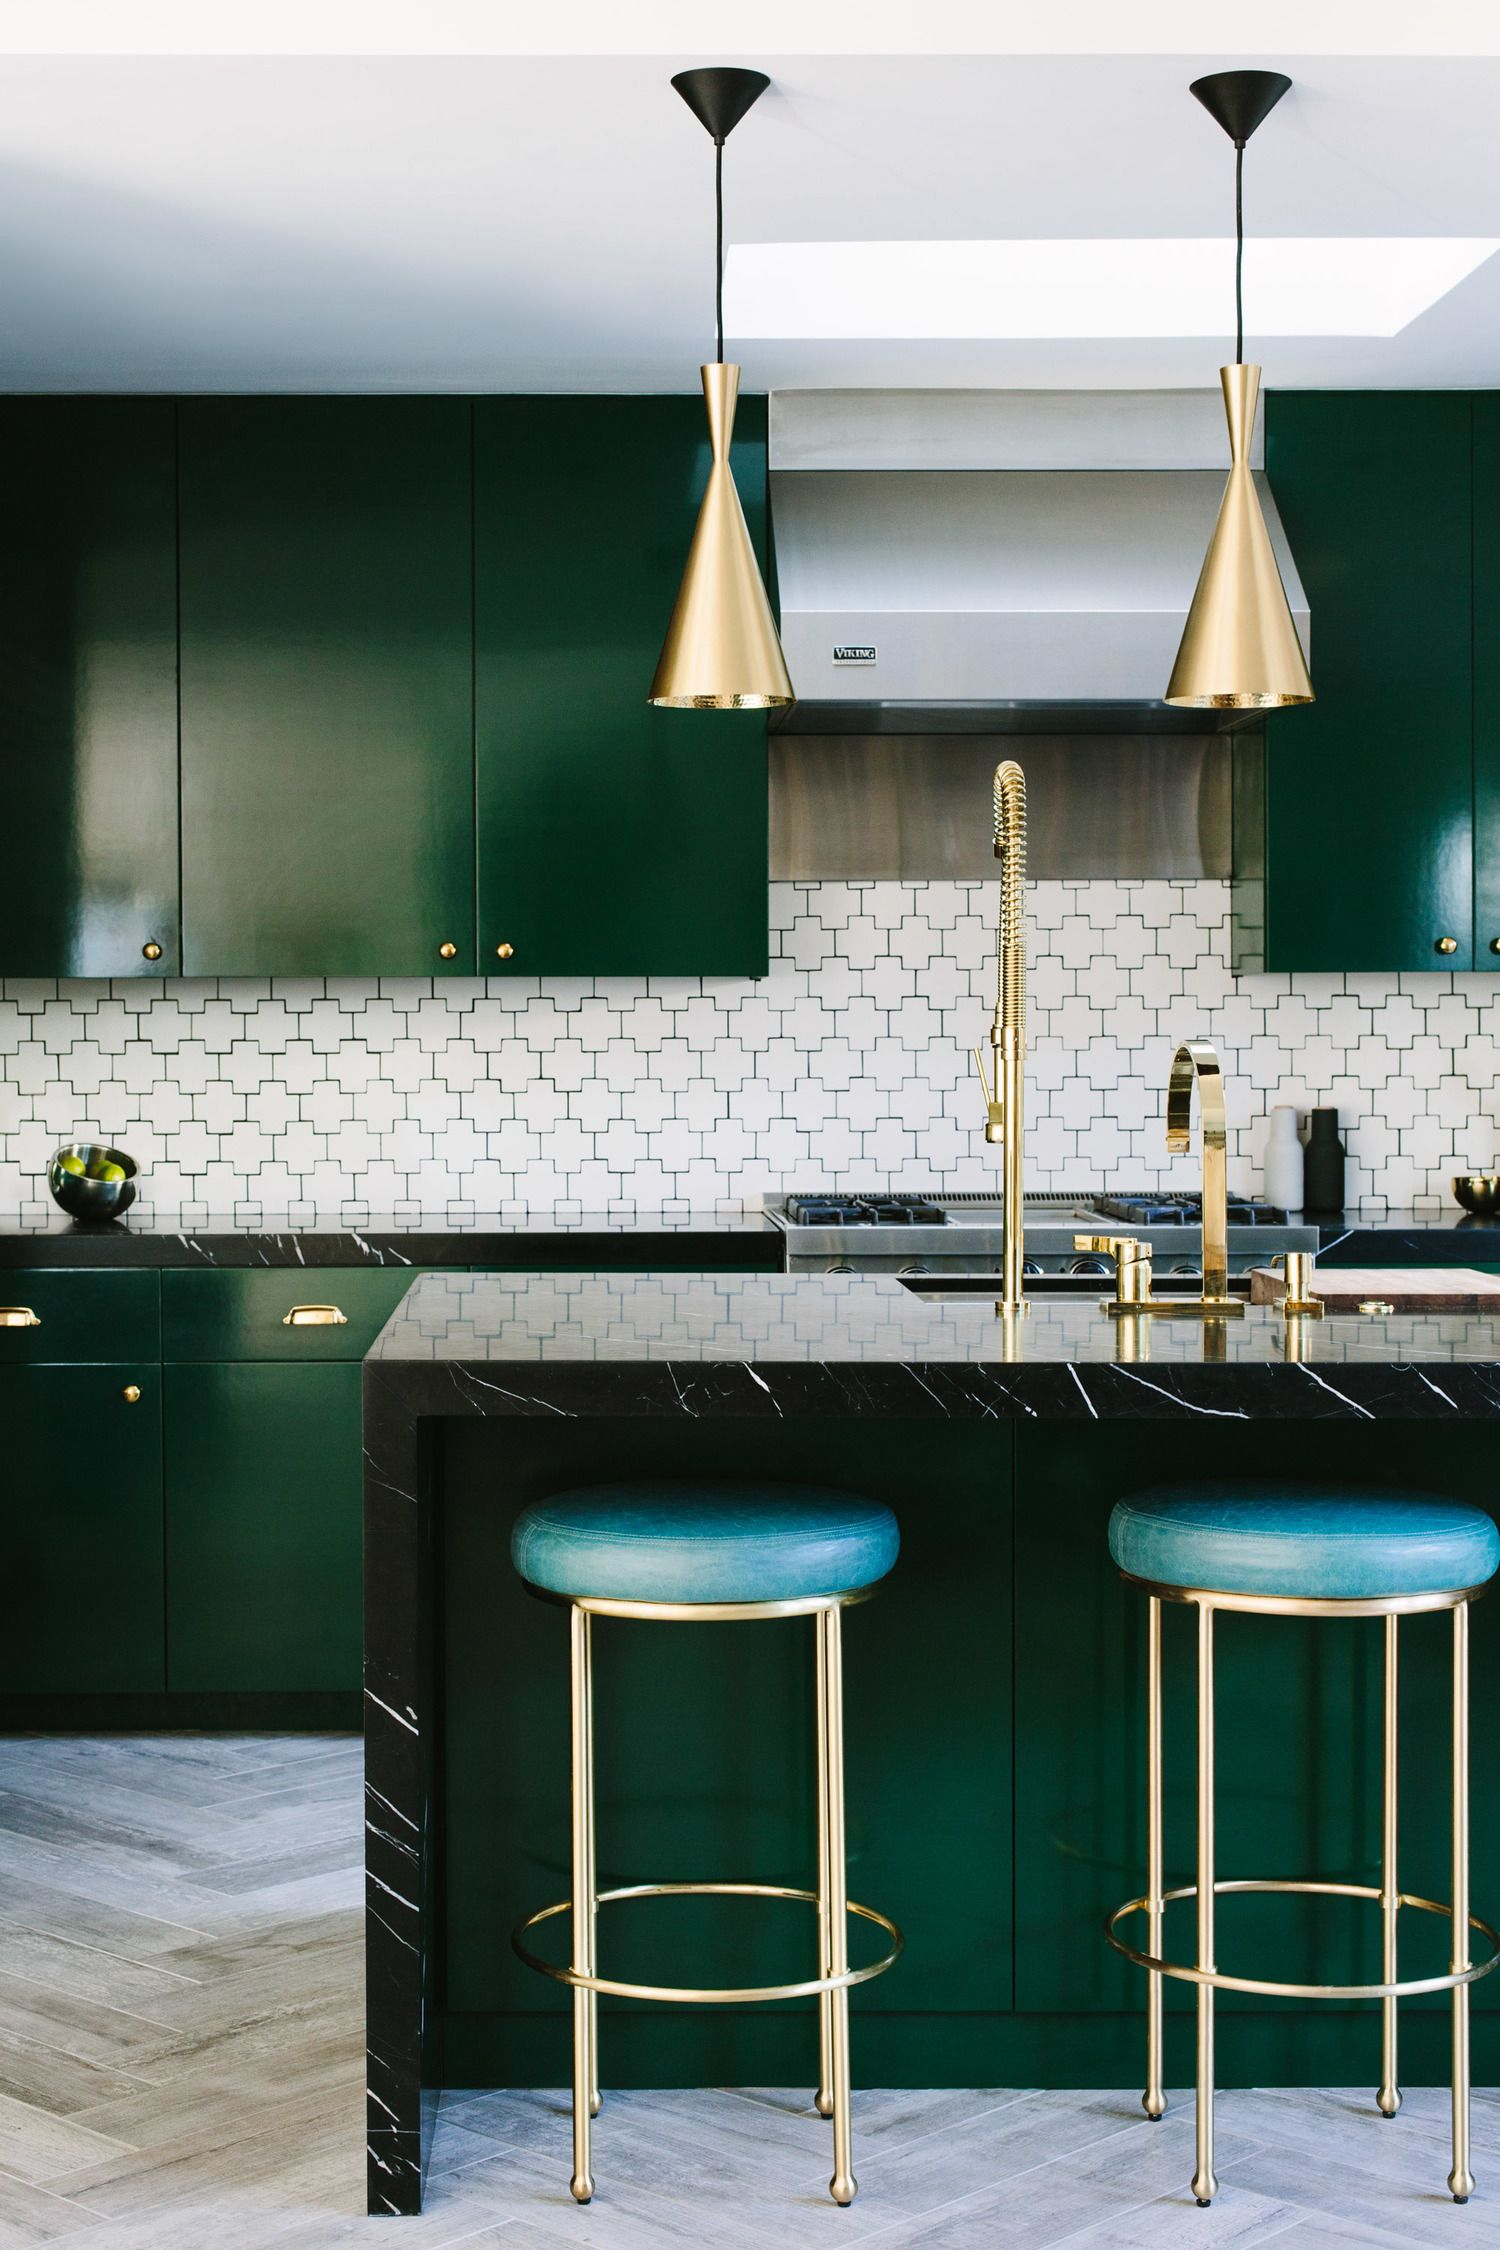 10 Backsplash Ideas to Steal for YourKitchen